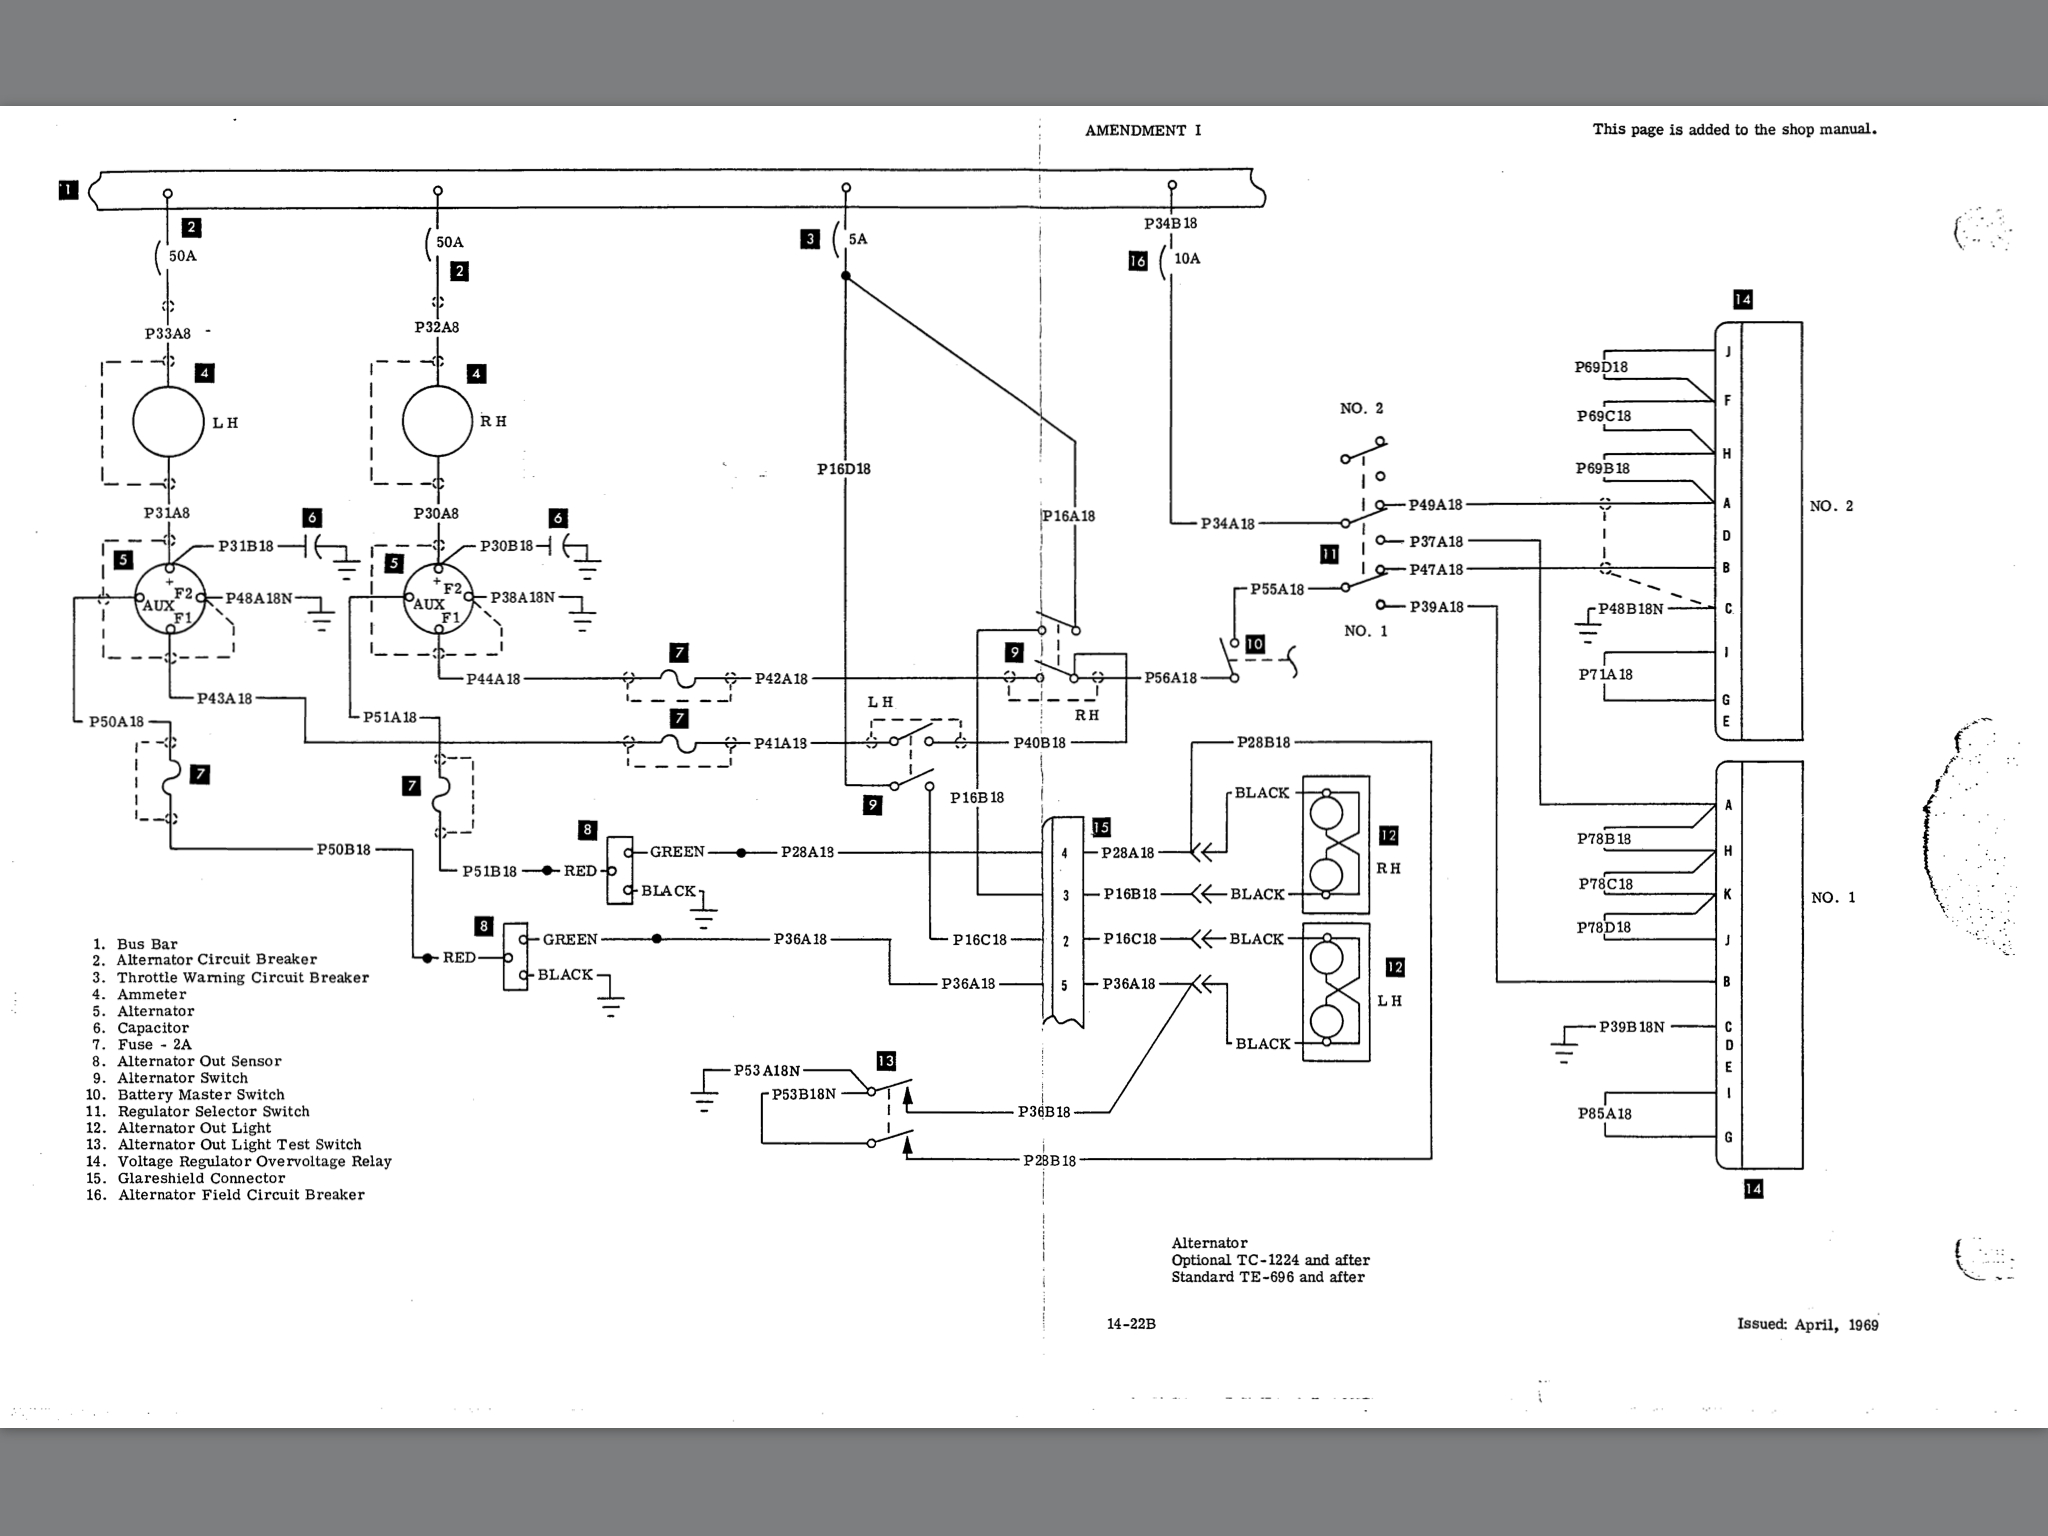 Wiring Diagram For Beech